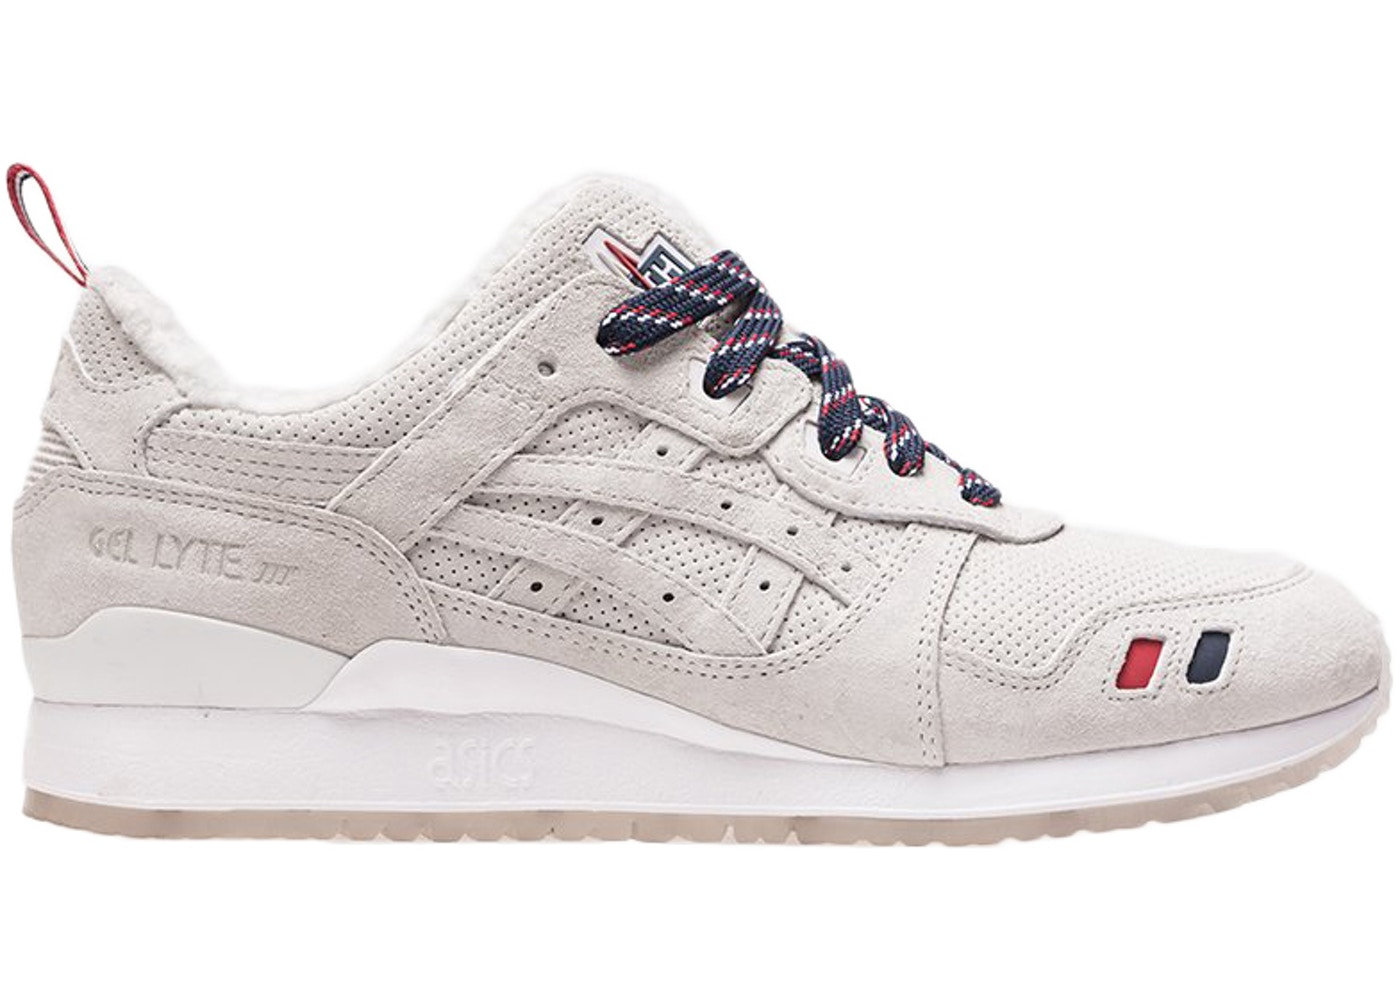 fe0868596c22 Asics Size 18 Shoes - Release Date